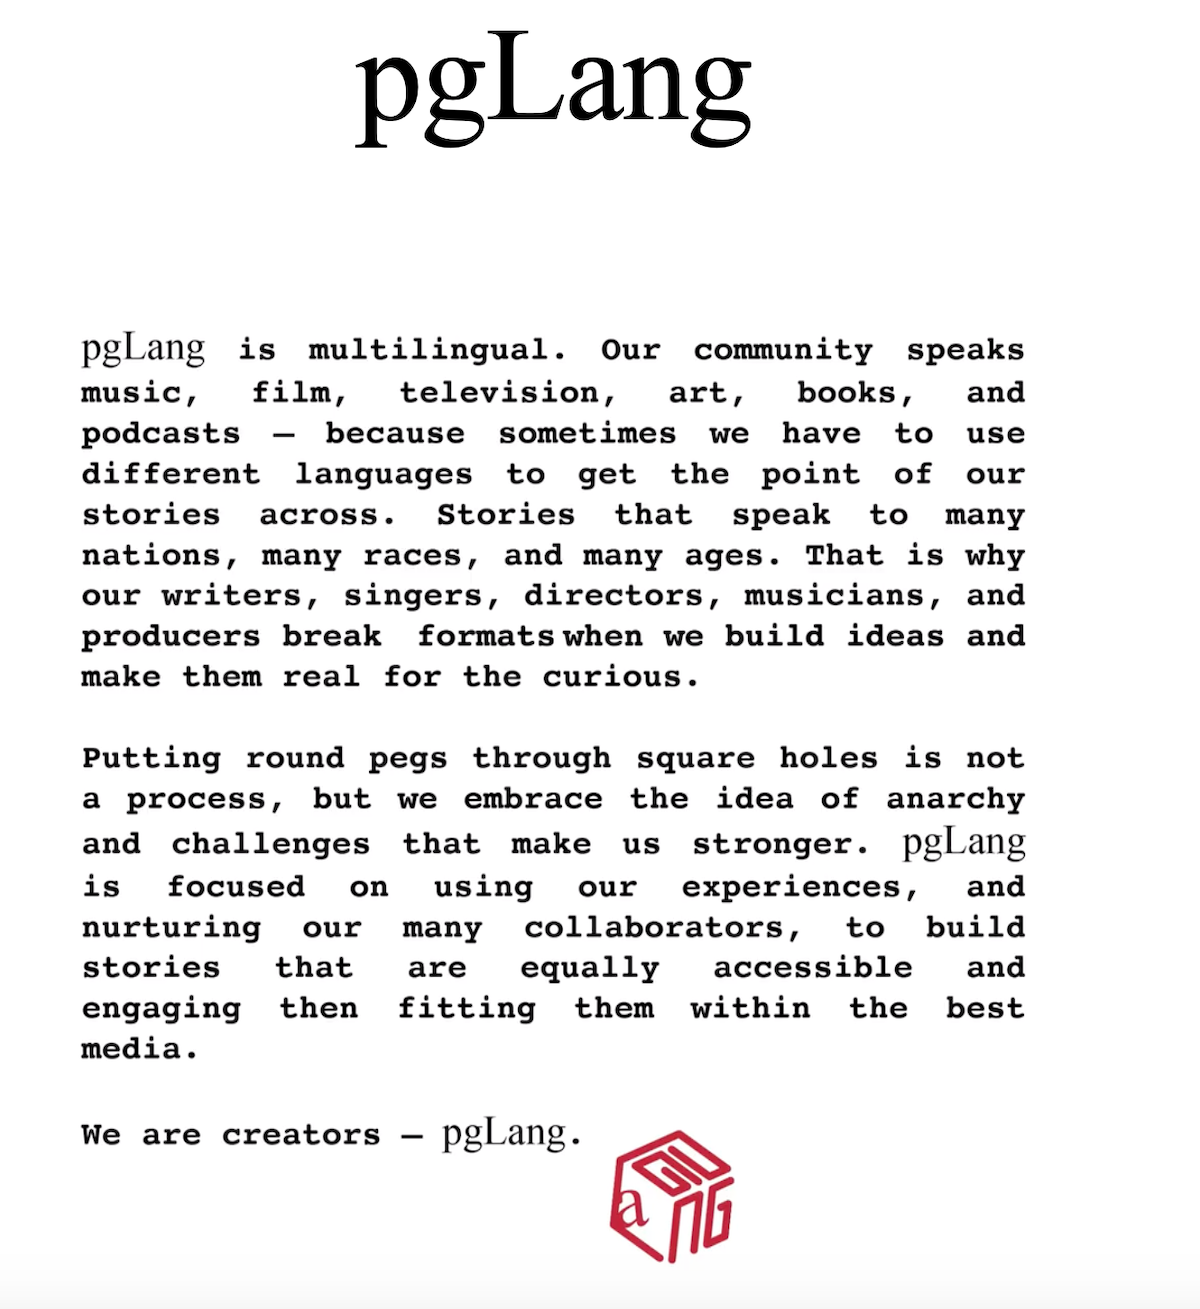 pglang kendrick lamar dave free mission statement